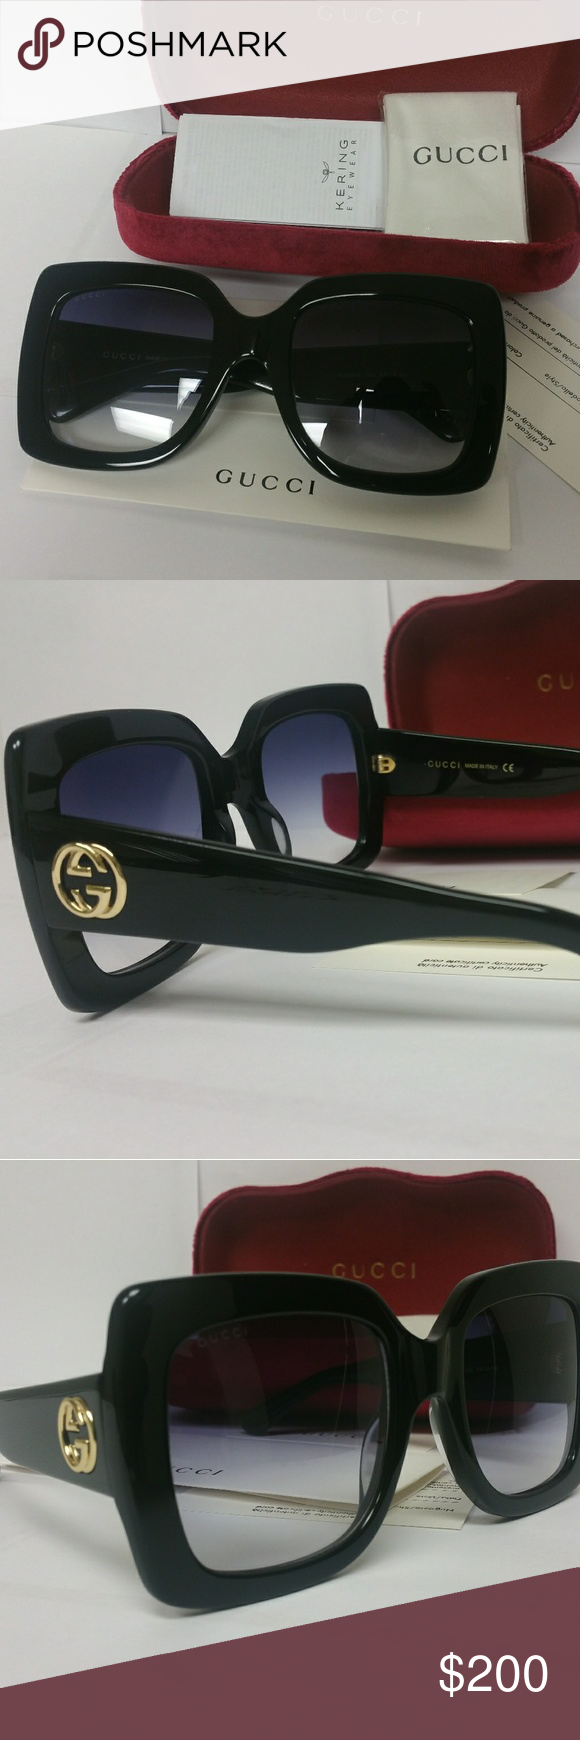 ddd7e1b748a6 Gucci Women's Sunglasses model GG0083S Gucci Women's Sunglasses model-  GG0083S-001 55 Comes with full package 100% Authentic GUCCI Tortoise large  Frame.